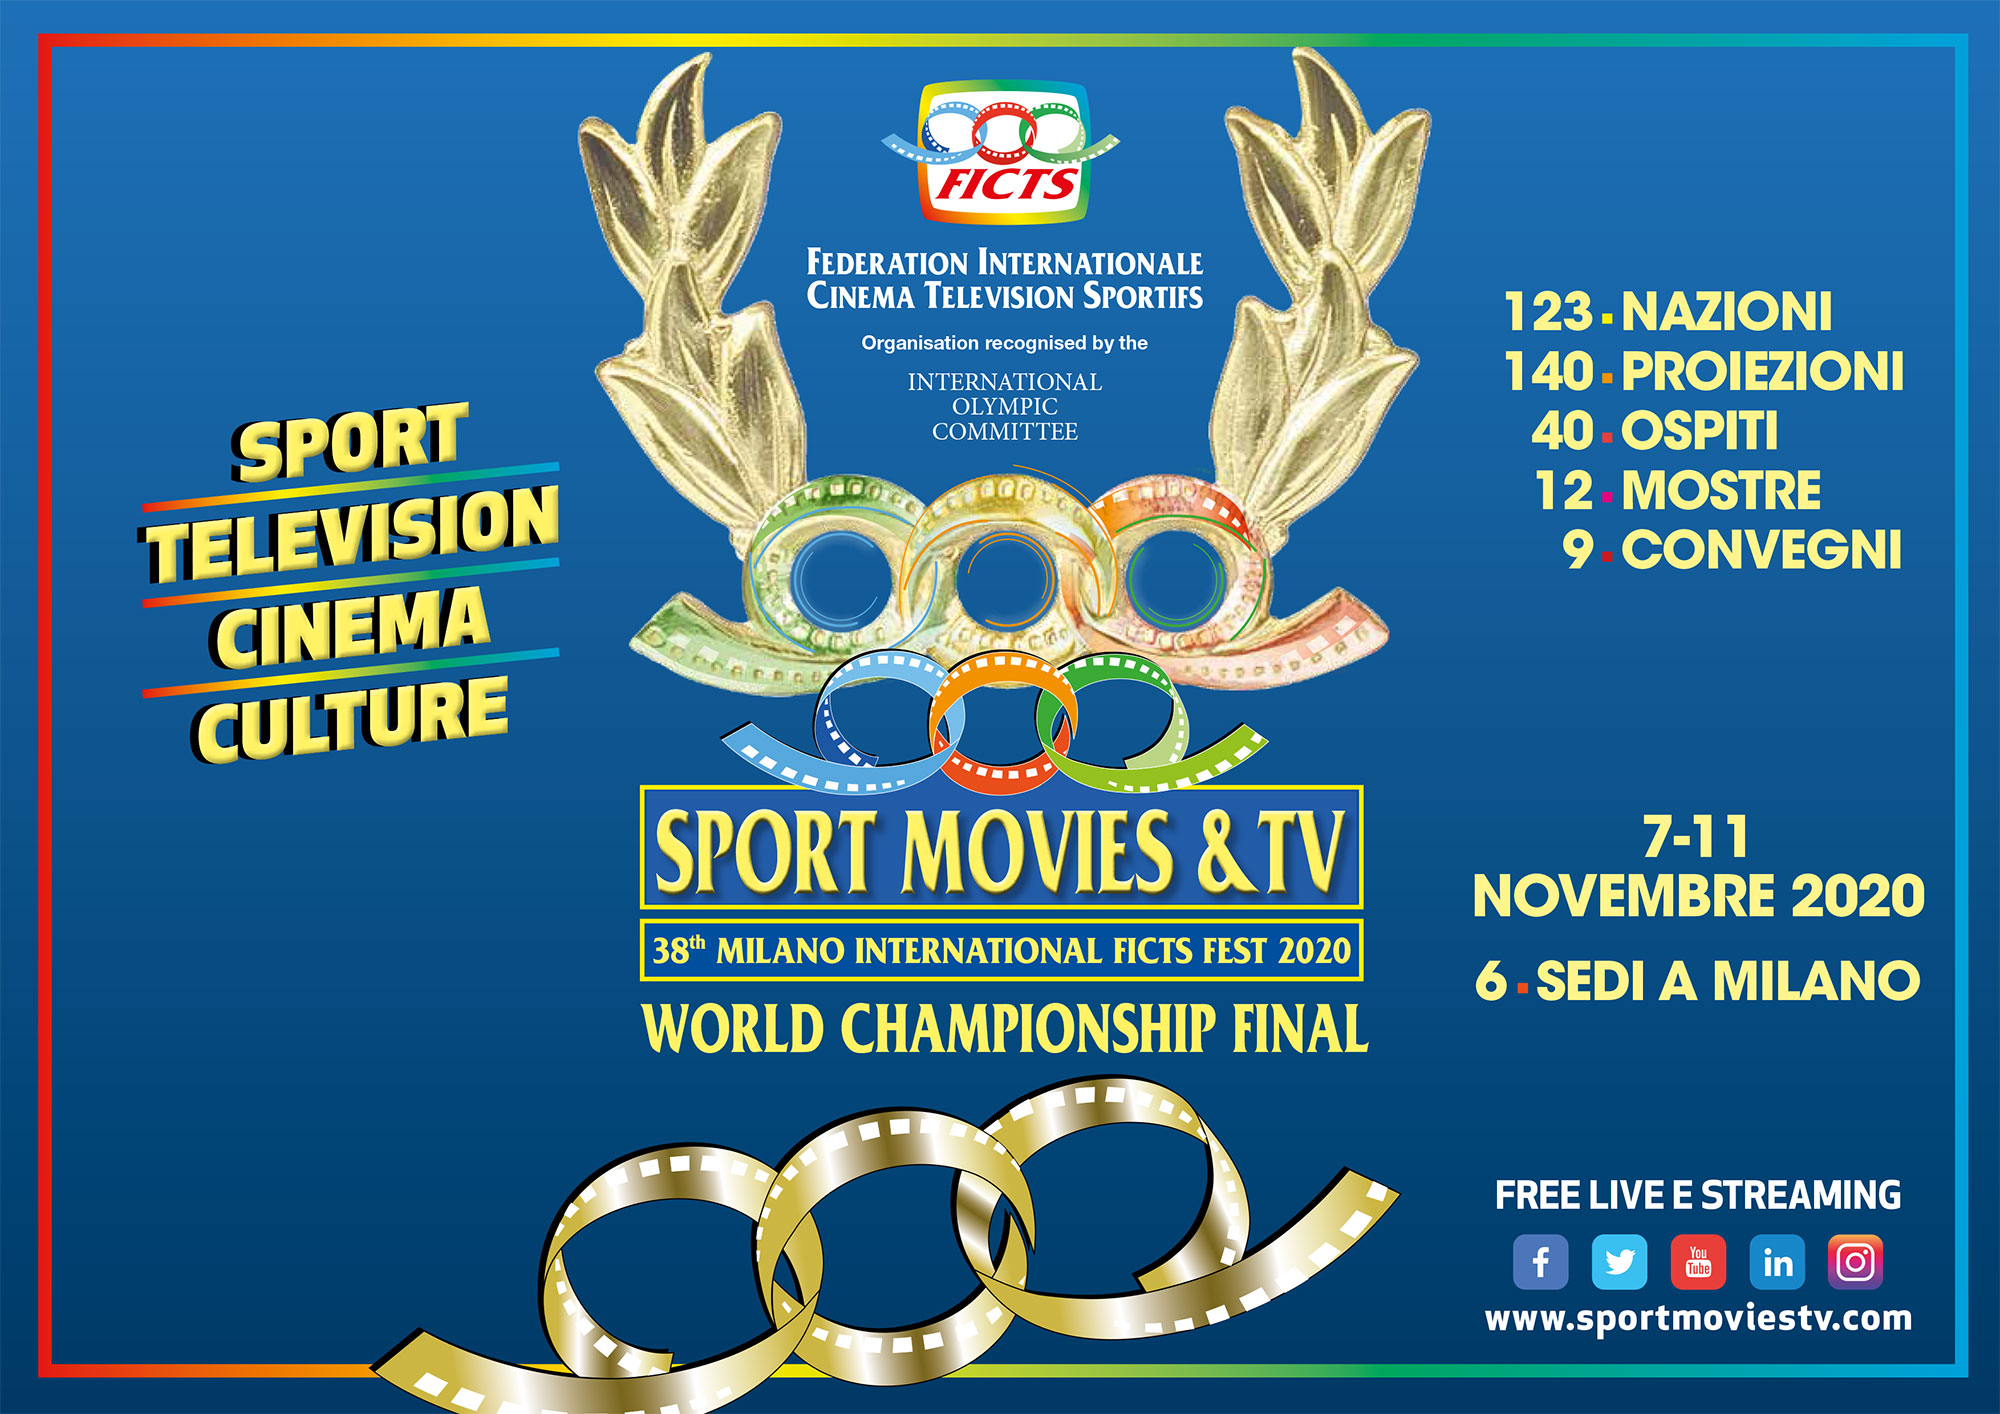 """SPORT MOVIES & TV 2020 - MILANO INTERNATIONAL FICTS FEST"""